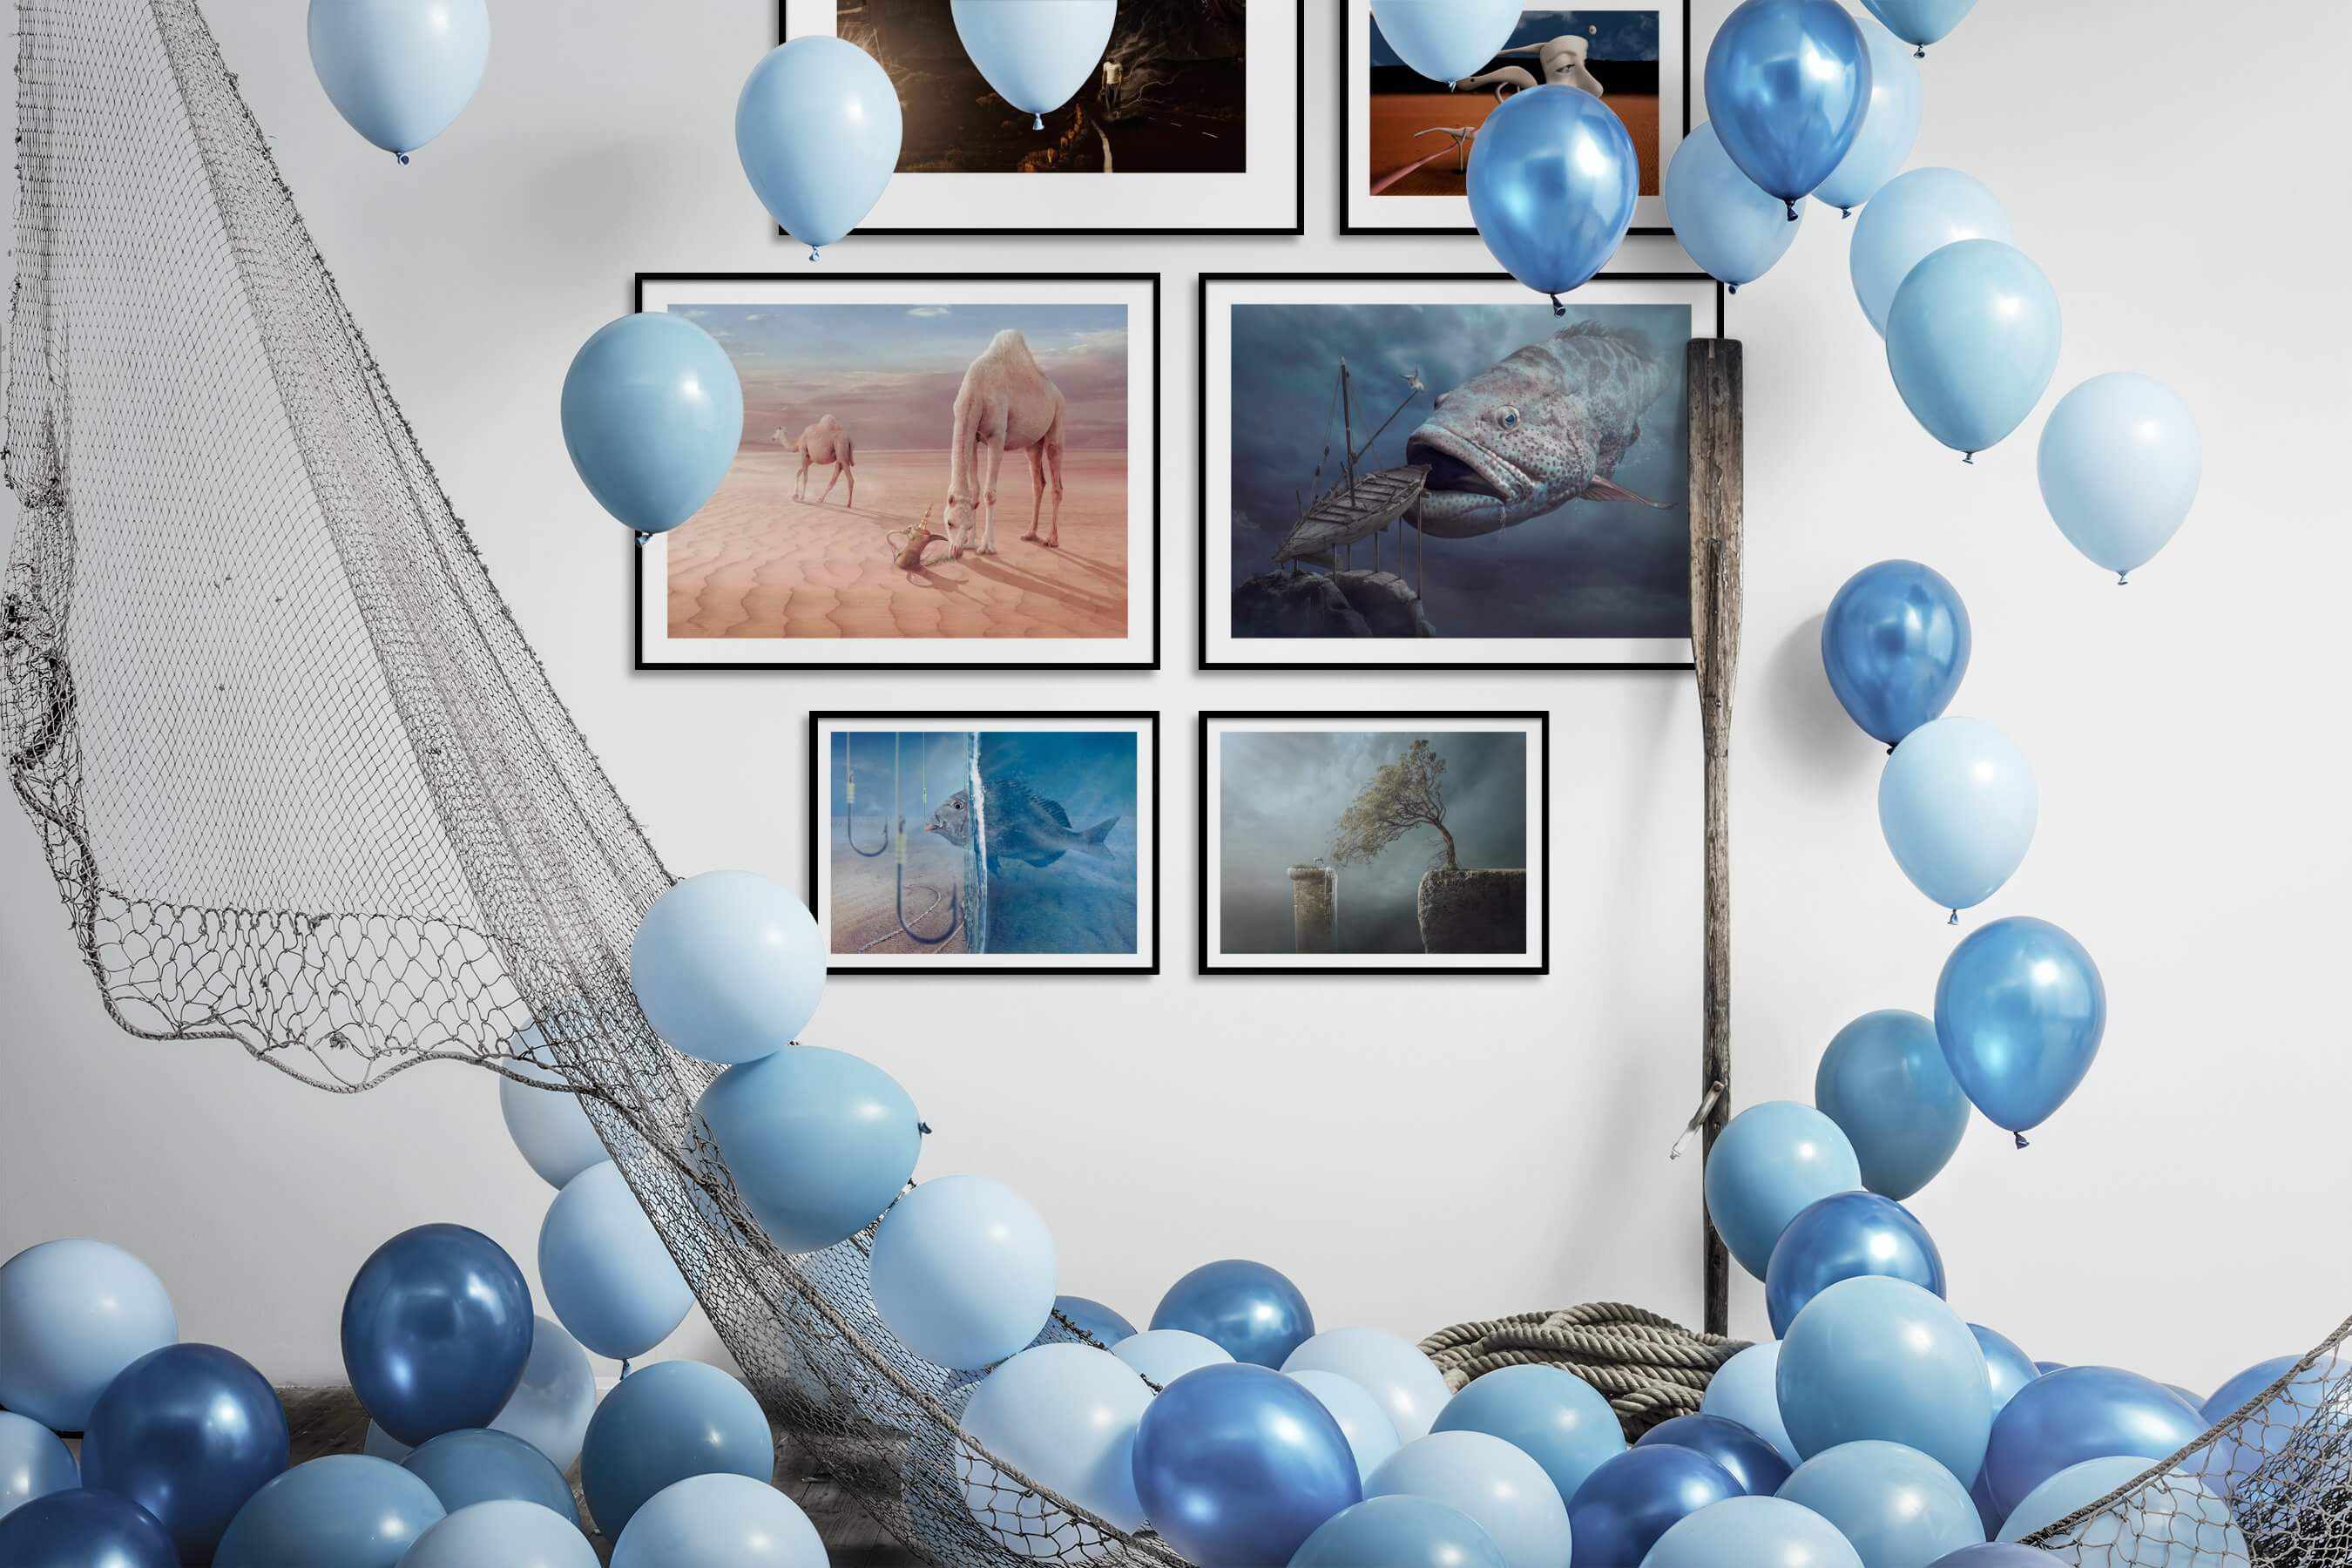 Gallery wall idea with six framed pictures arranged on a wall depicting Artsy, Animals, Beach & Water, For the Minimalist, and Nature